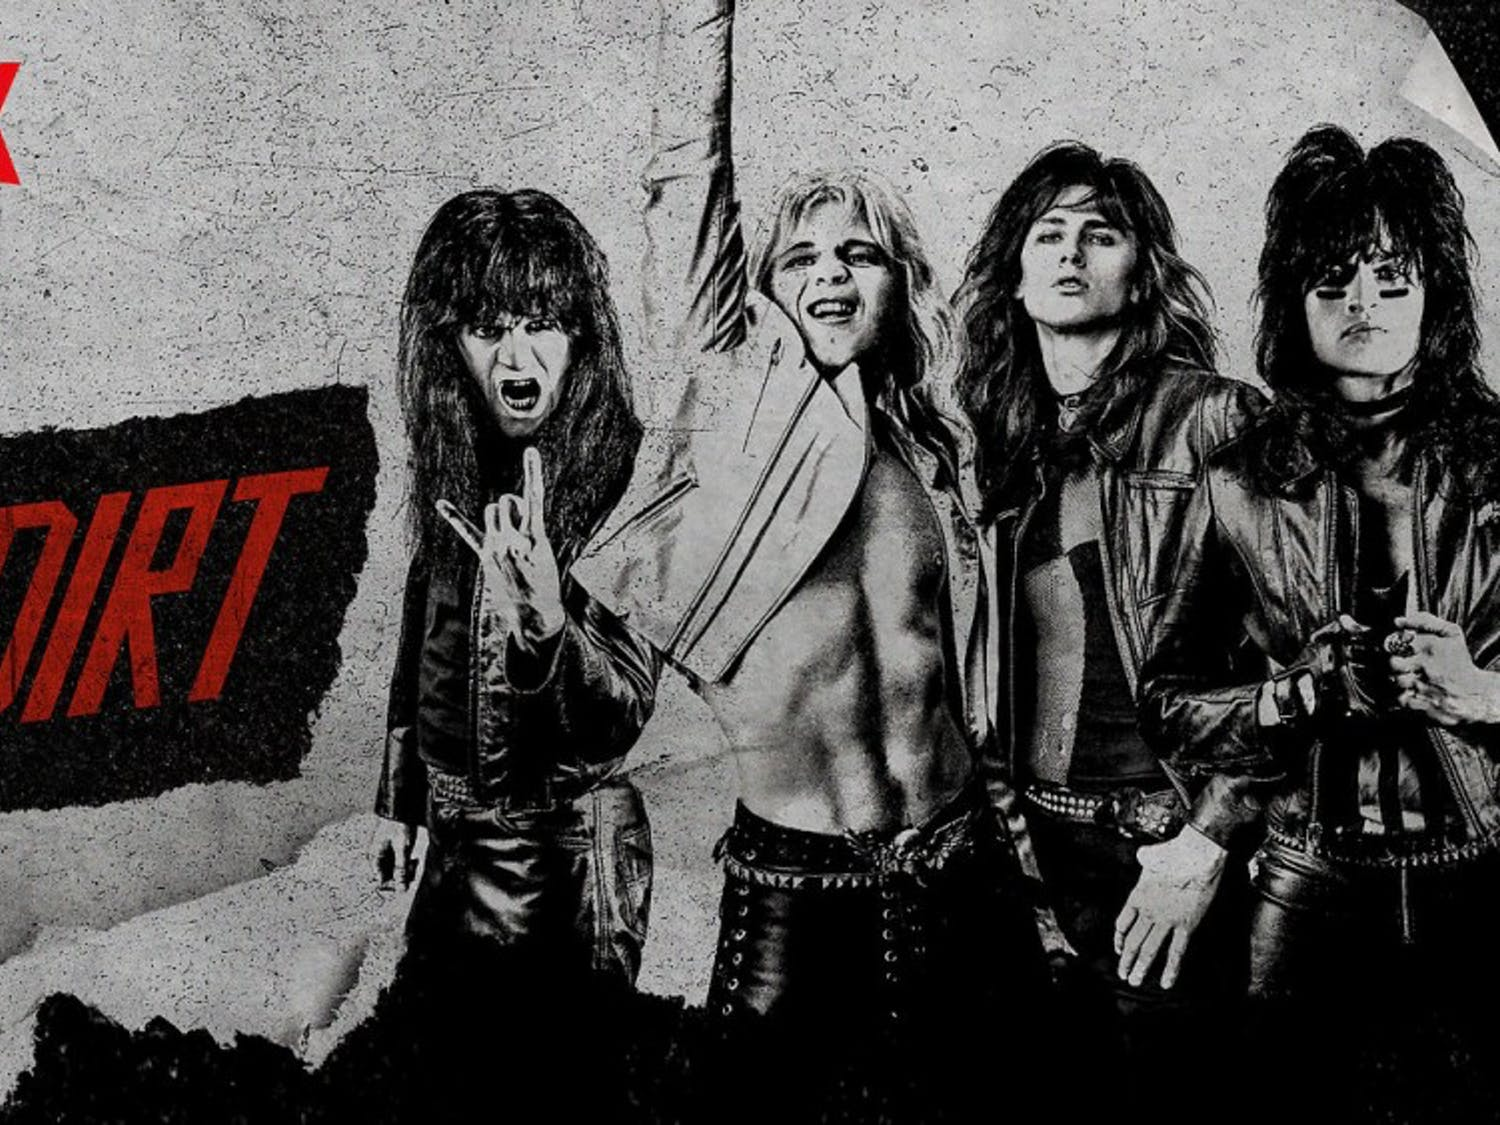 The Mötley Crüe Netflix biopic premiered March 22, detailing the tumultuous rise to fame and the dark side it holds.